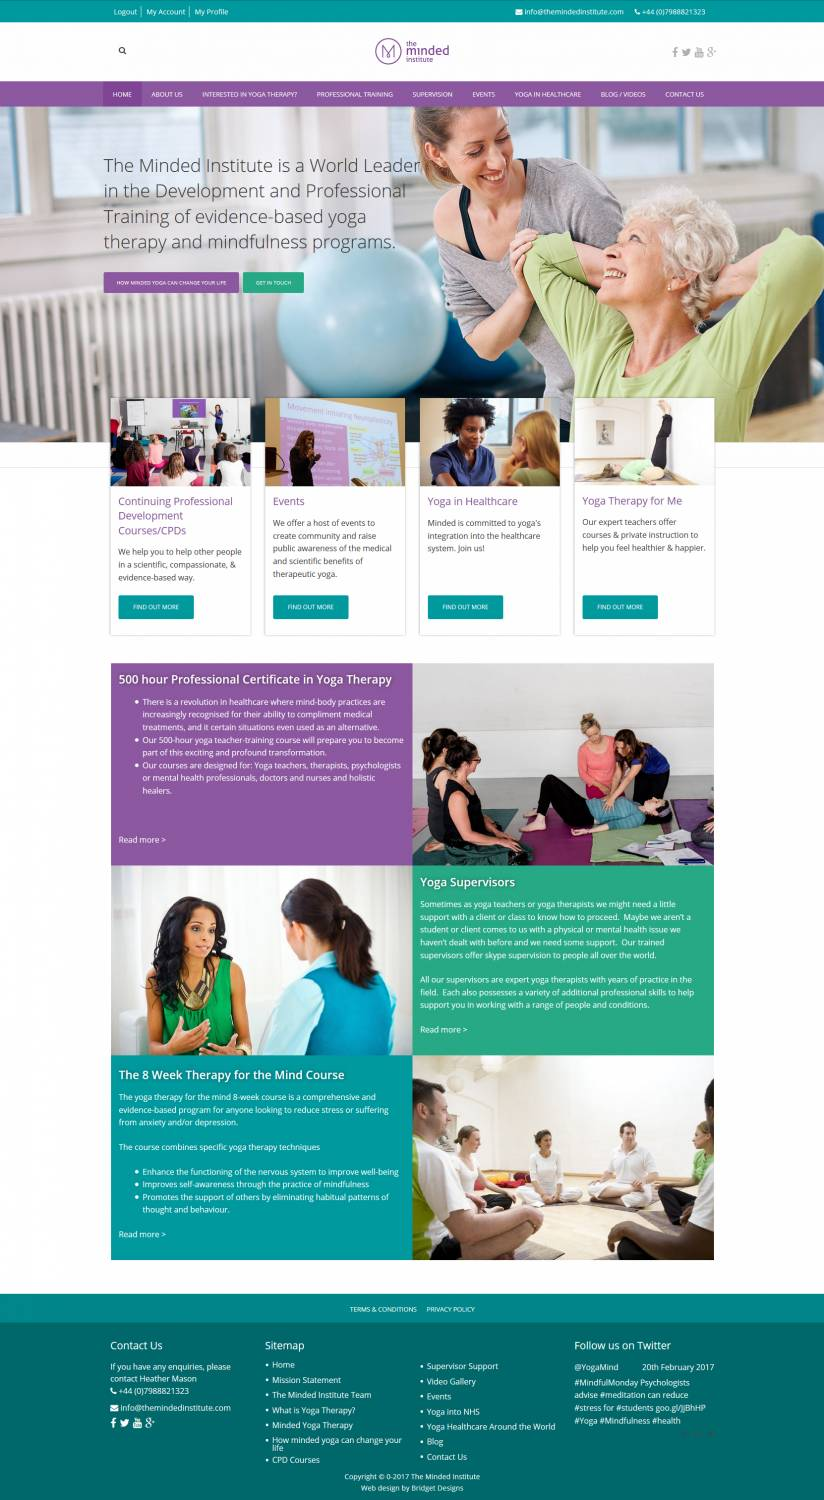 The Minded Institute Website Design